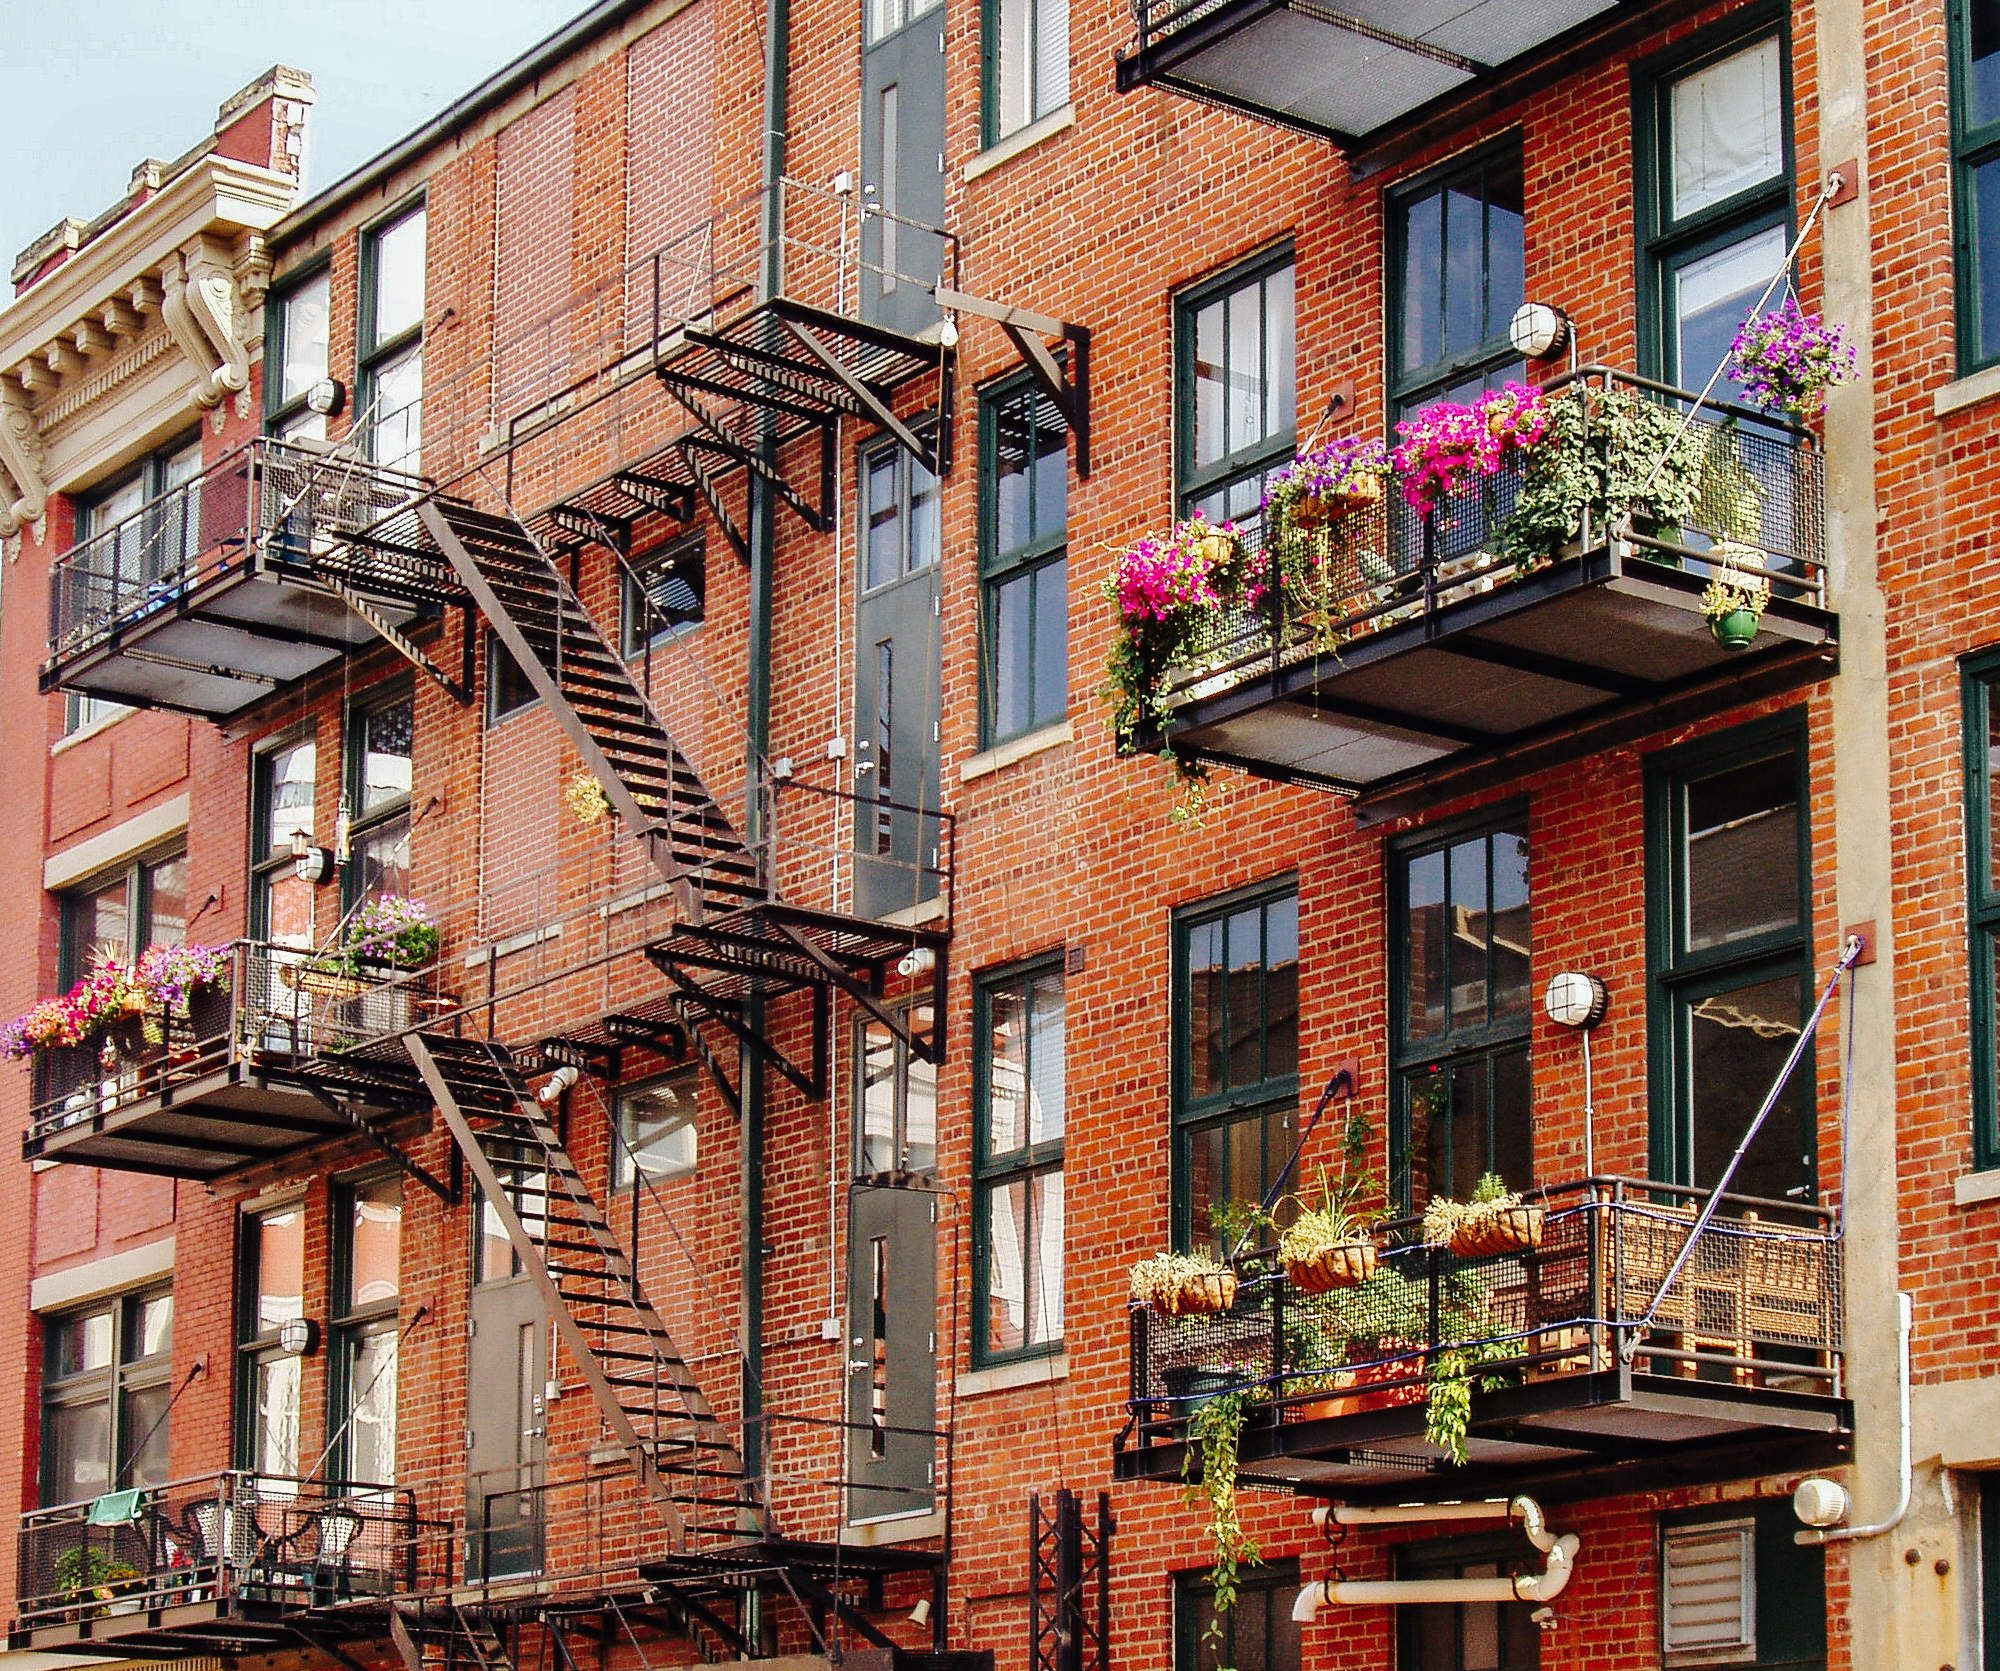 Fireplace Best Brooklyn Apartment Rentals Ideas On Fire Turn Your Pathetic Fire Escape Into An Awesome Balcony